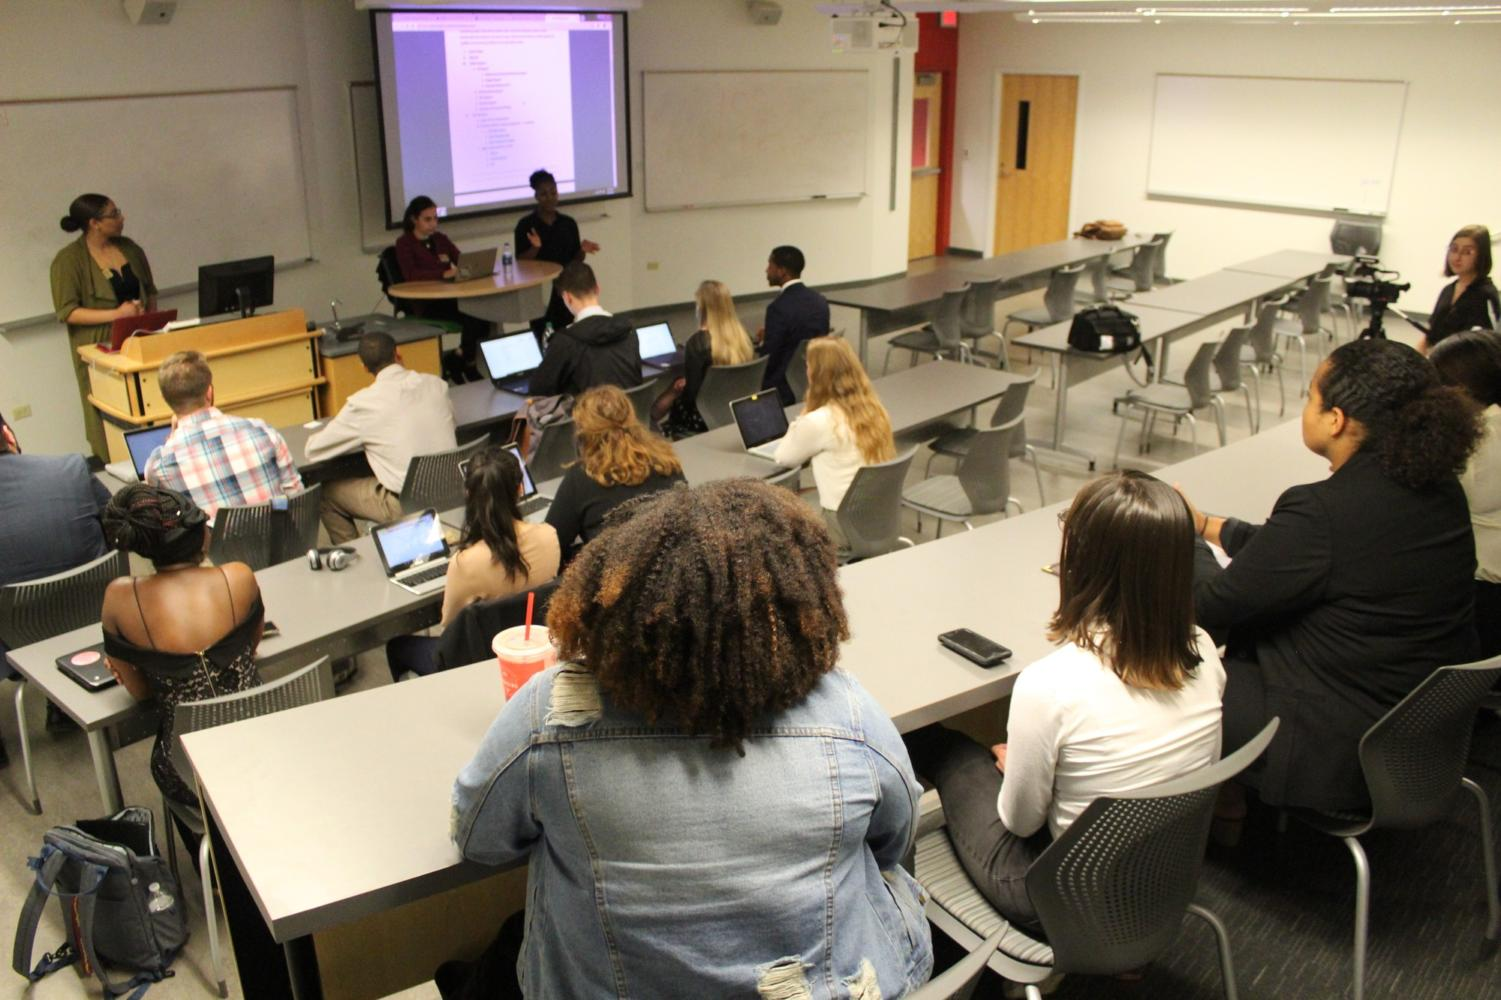 Students listen as the Student Government Association discuss their responses to President Sierra Ambrose's list of vetos. The vetos become a major point of contention. Photo credit: Cristian Orellana